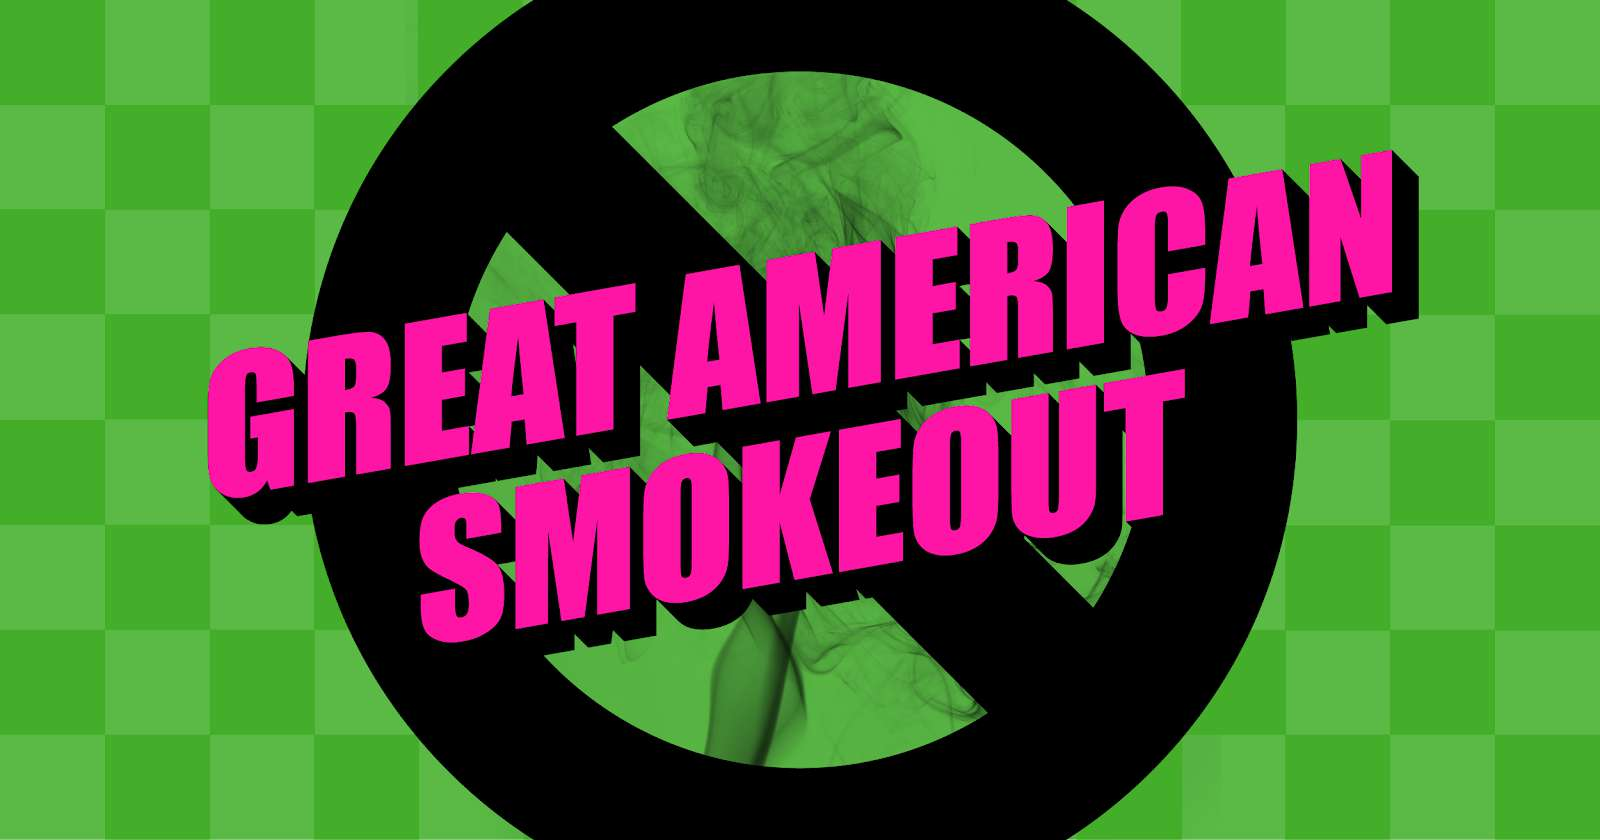 Great American Smokeout Wishes Images